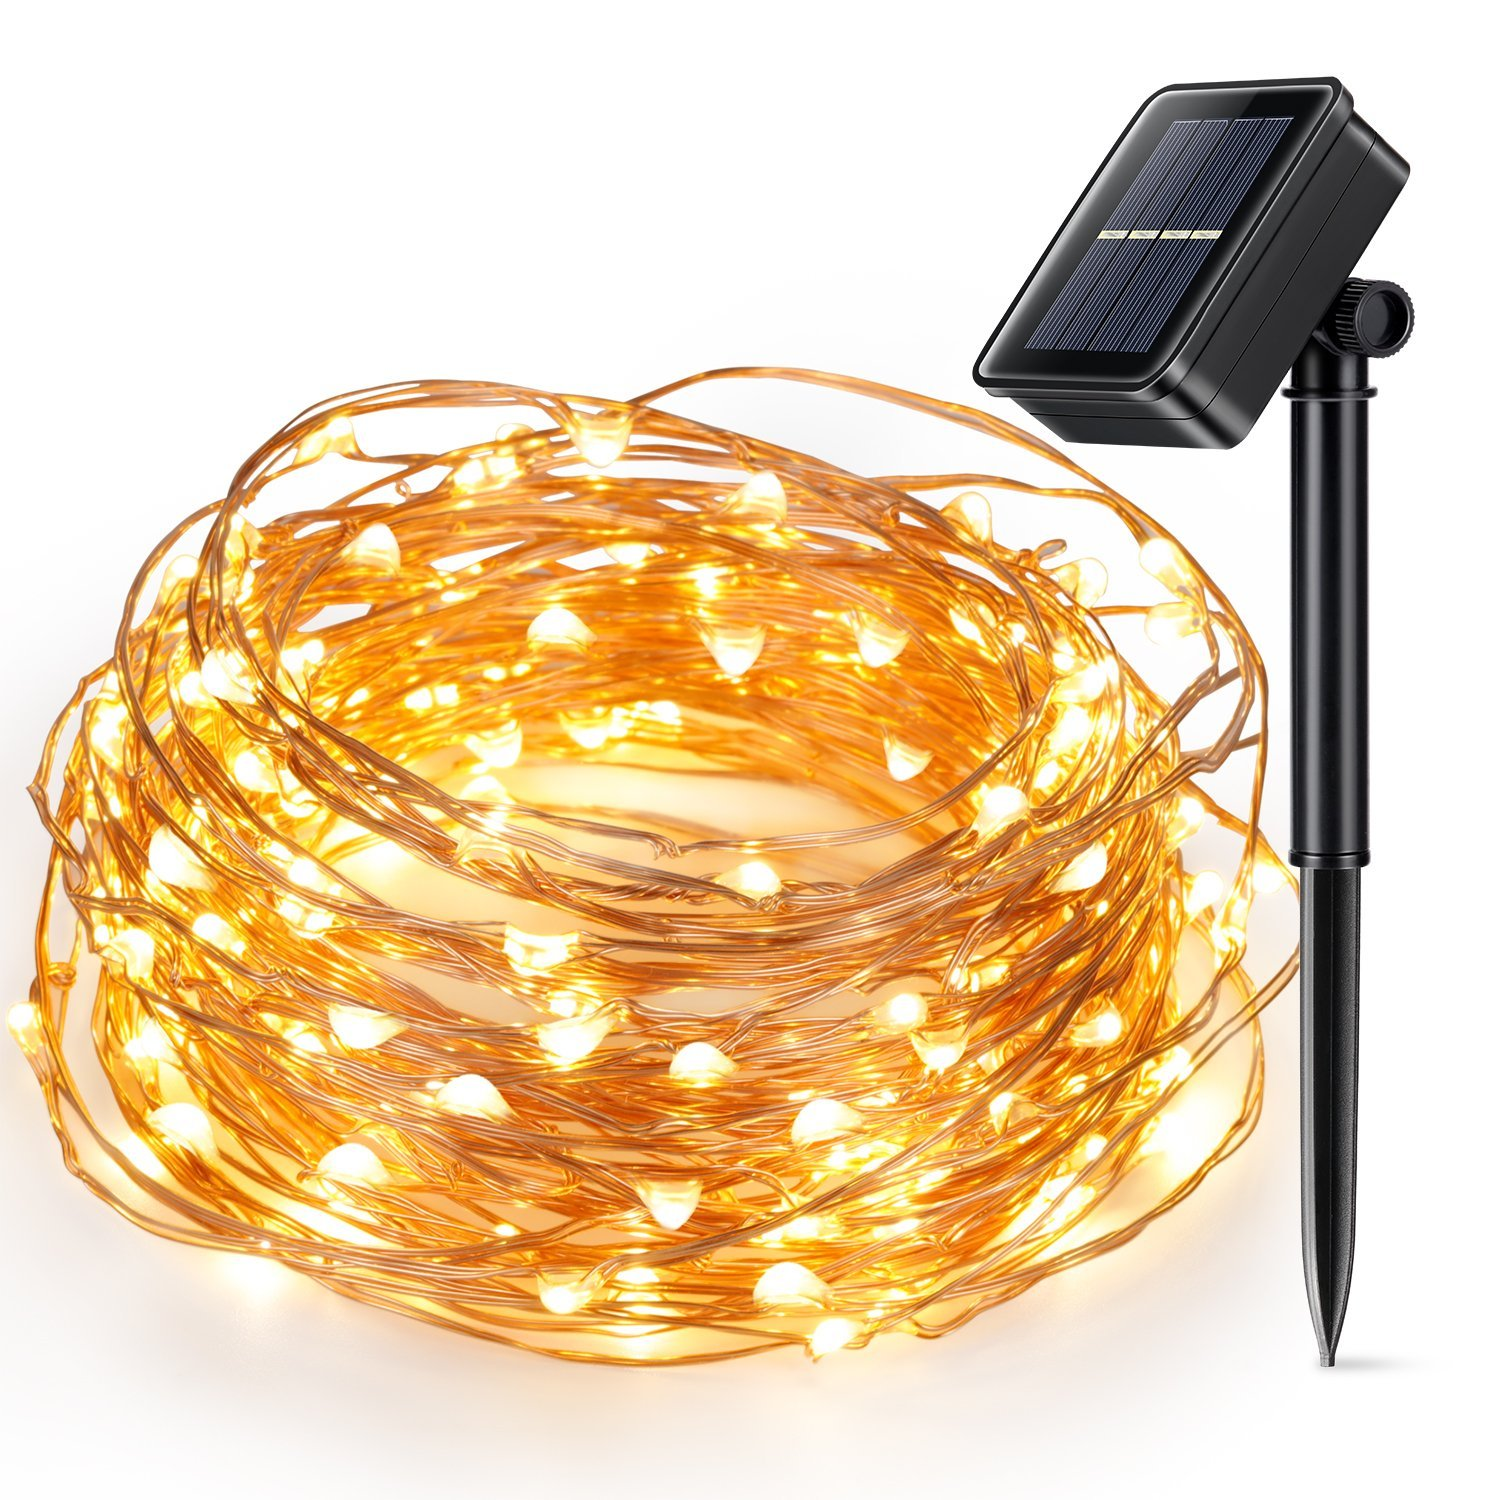 Solar Powered String Light, Kohree 100 Micro LEDs Light String With 33ft Long Ultra Thin String Copper Wire